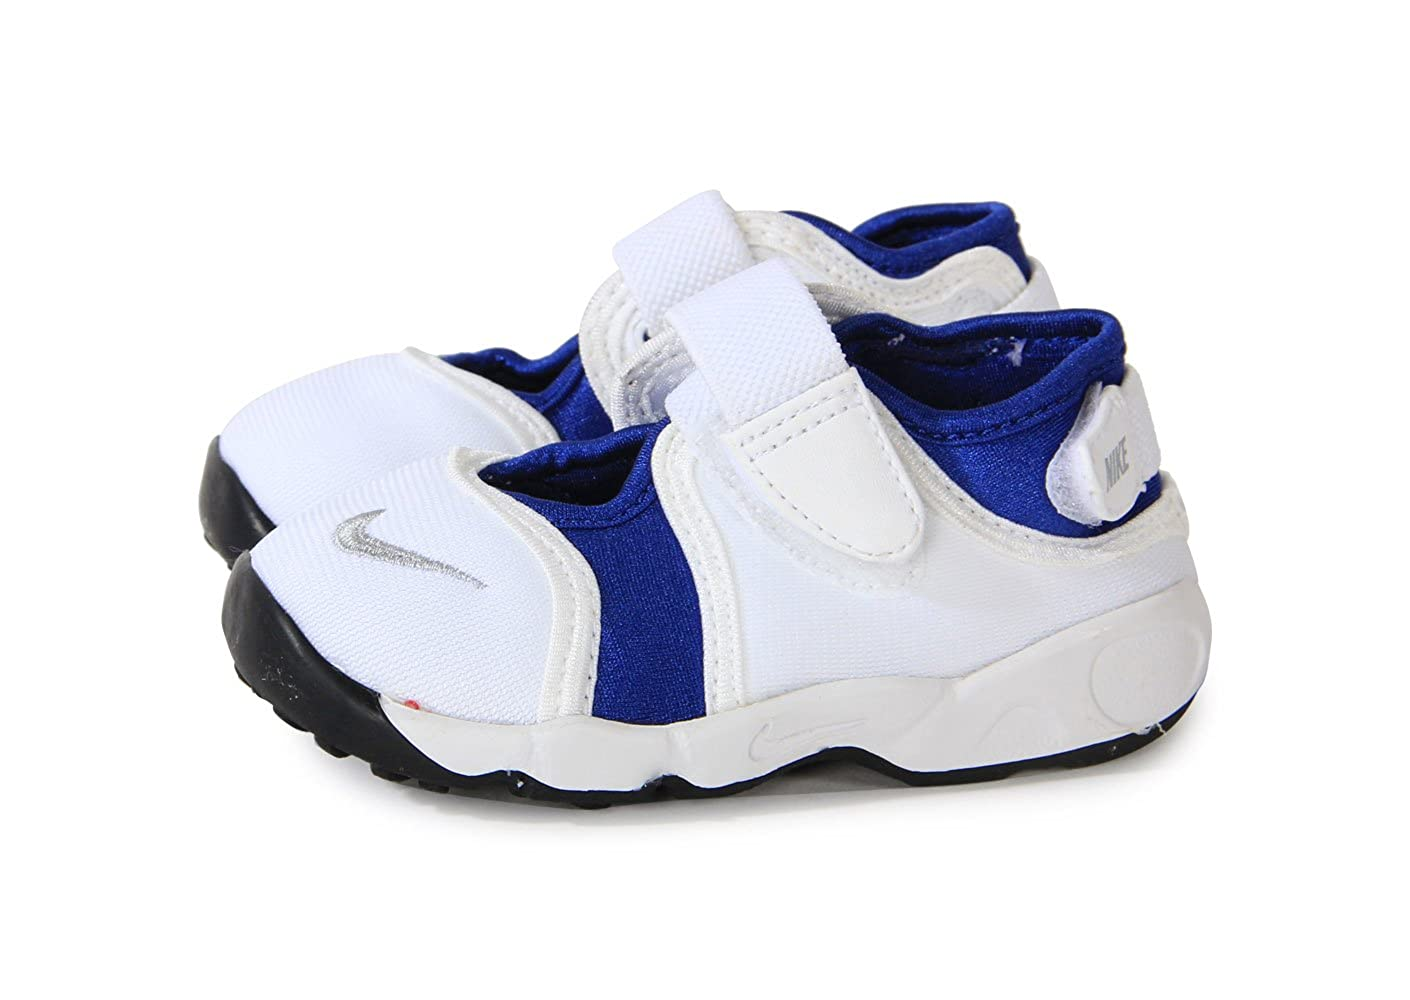 sports shoes 90e59 b0899 Nike Rift Infants Toddler Trainers Shoes White Grey Blue (UK-6.5)   Amazon.co.uk  Shoes   Bags